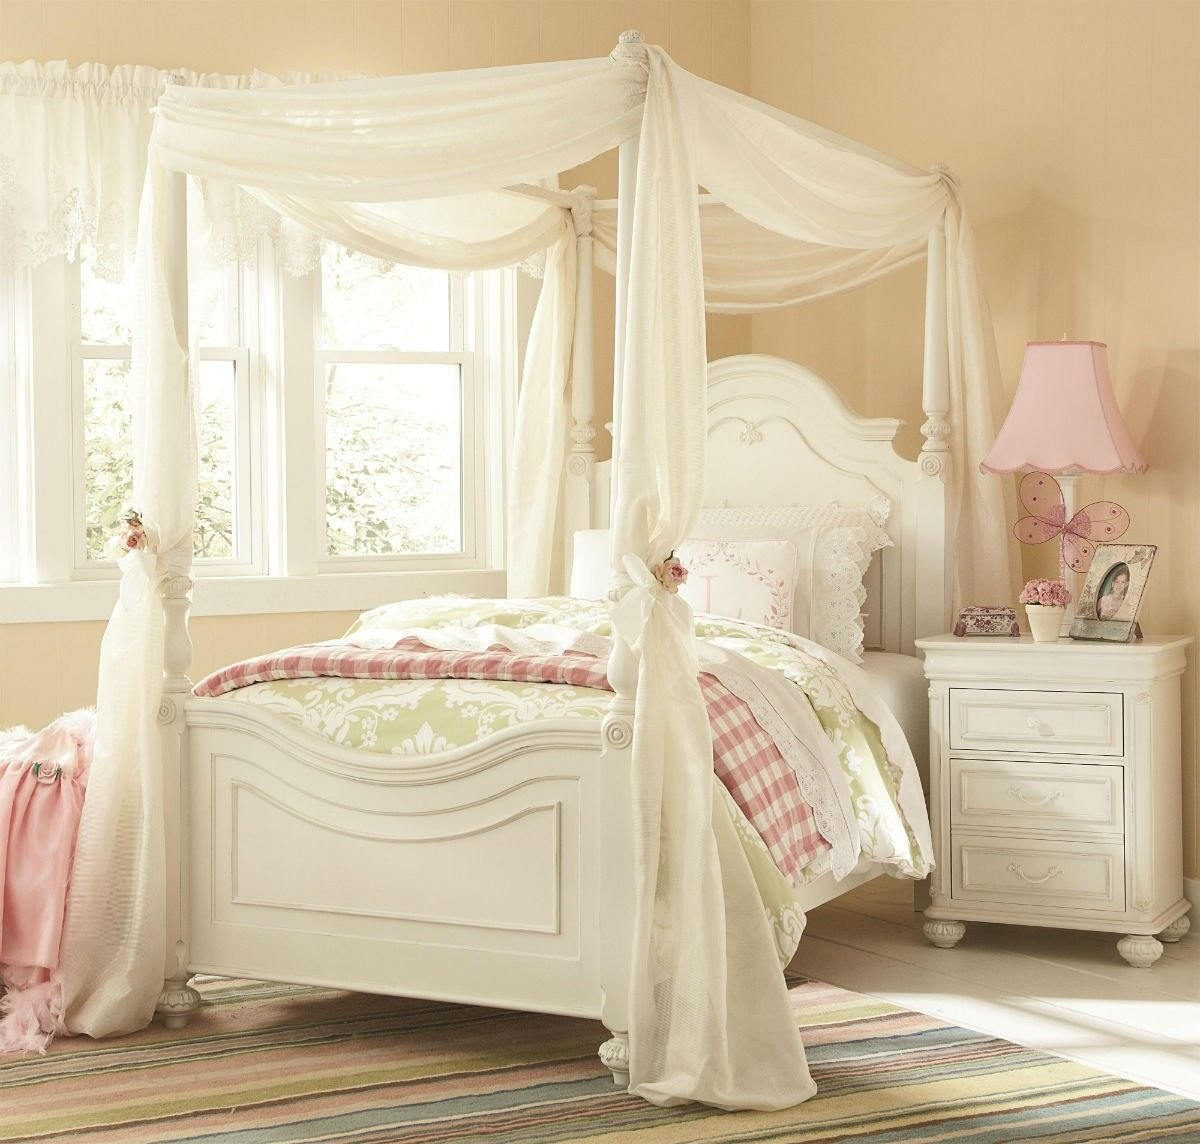 Best 19 Fabulous Canopy Bed Designs For Your Little Princess With Pictures